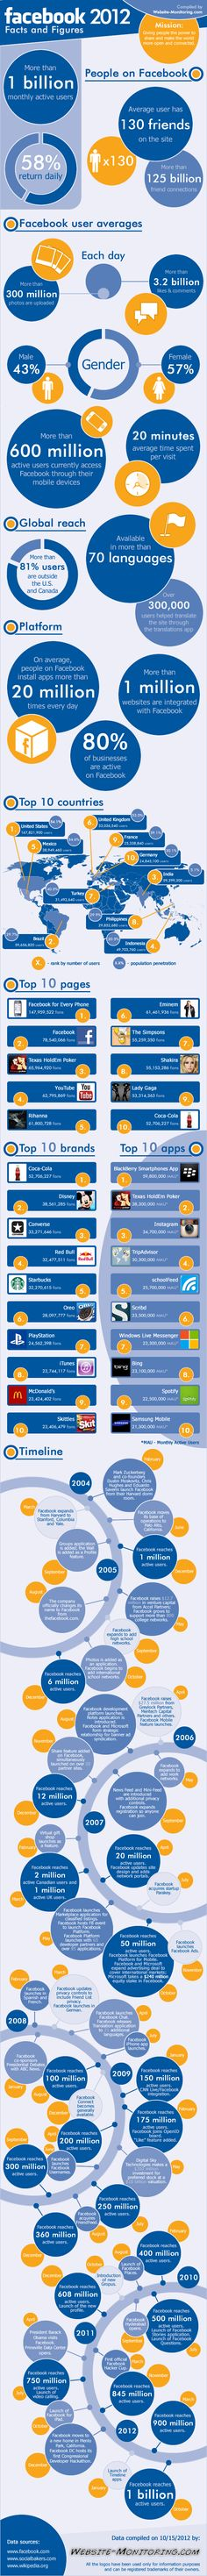 Facebook 2012 – Facts & Figures #infographic by website monitoring